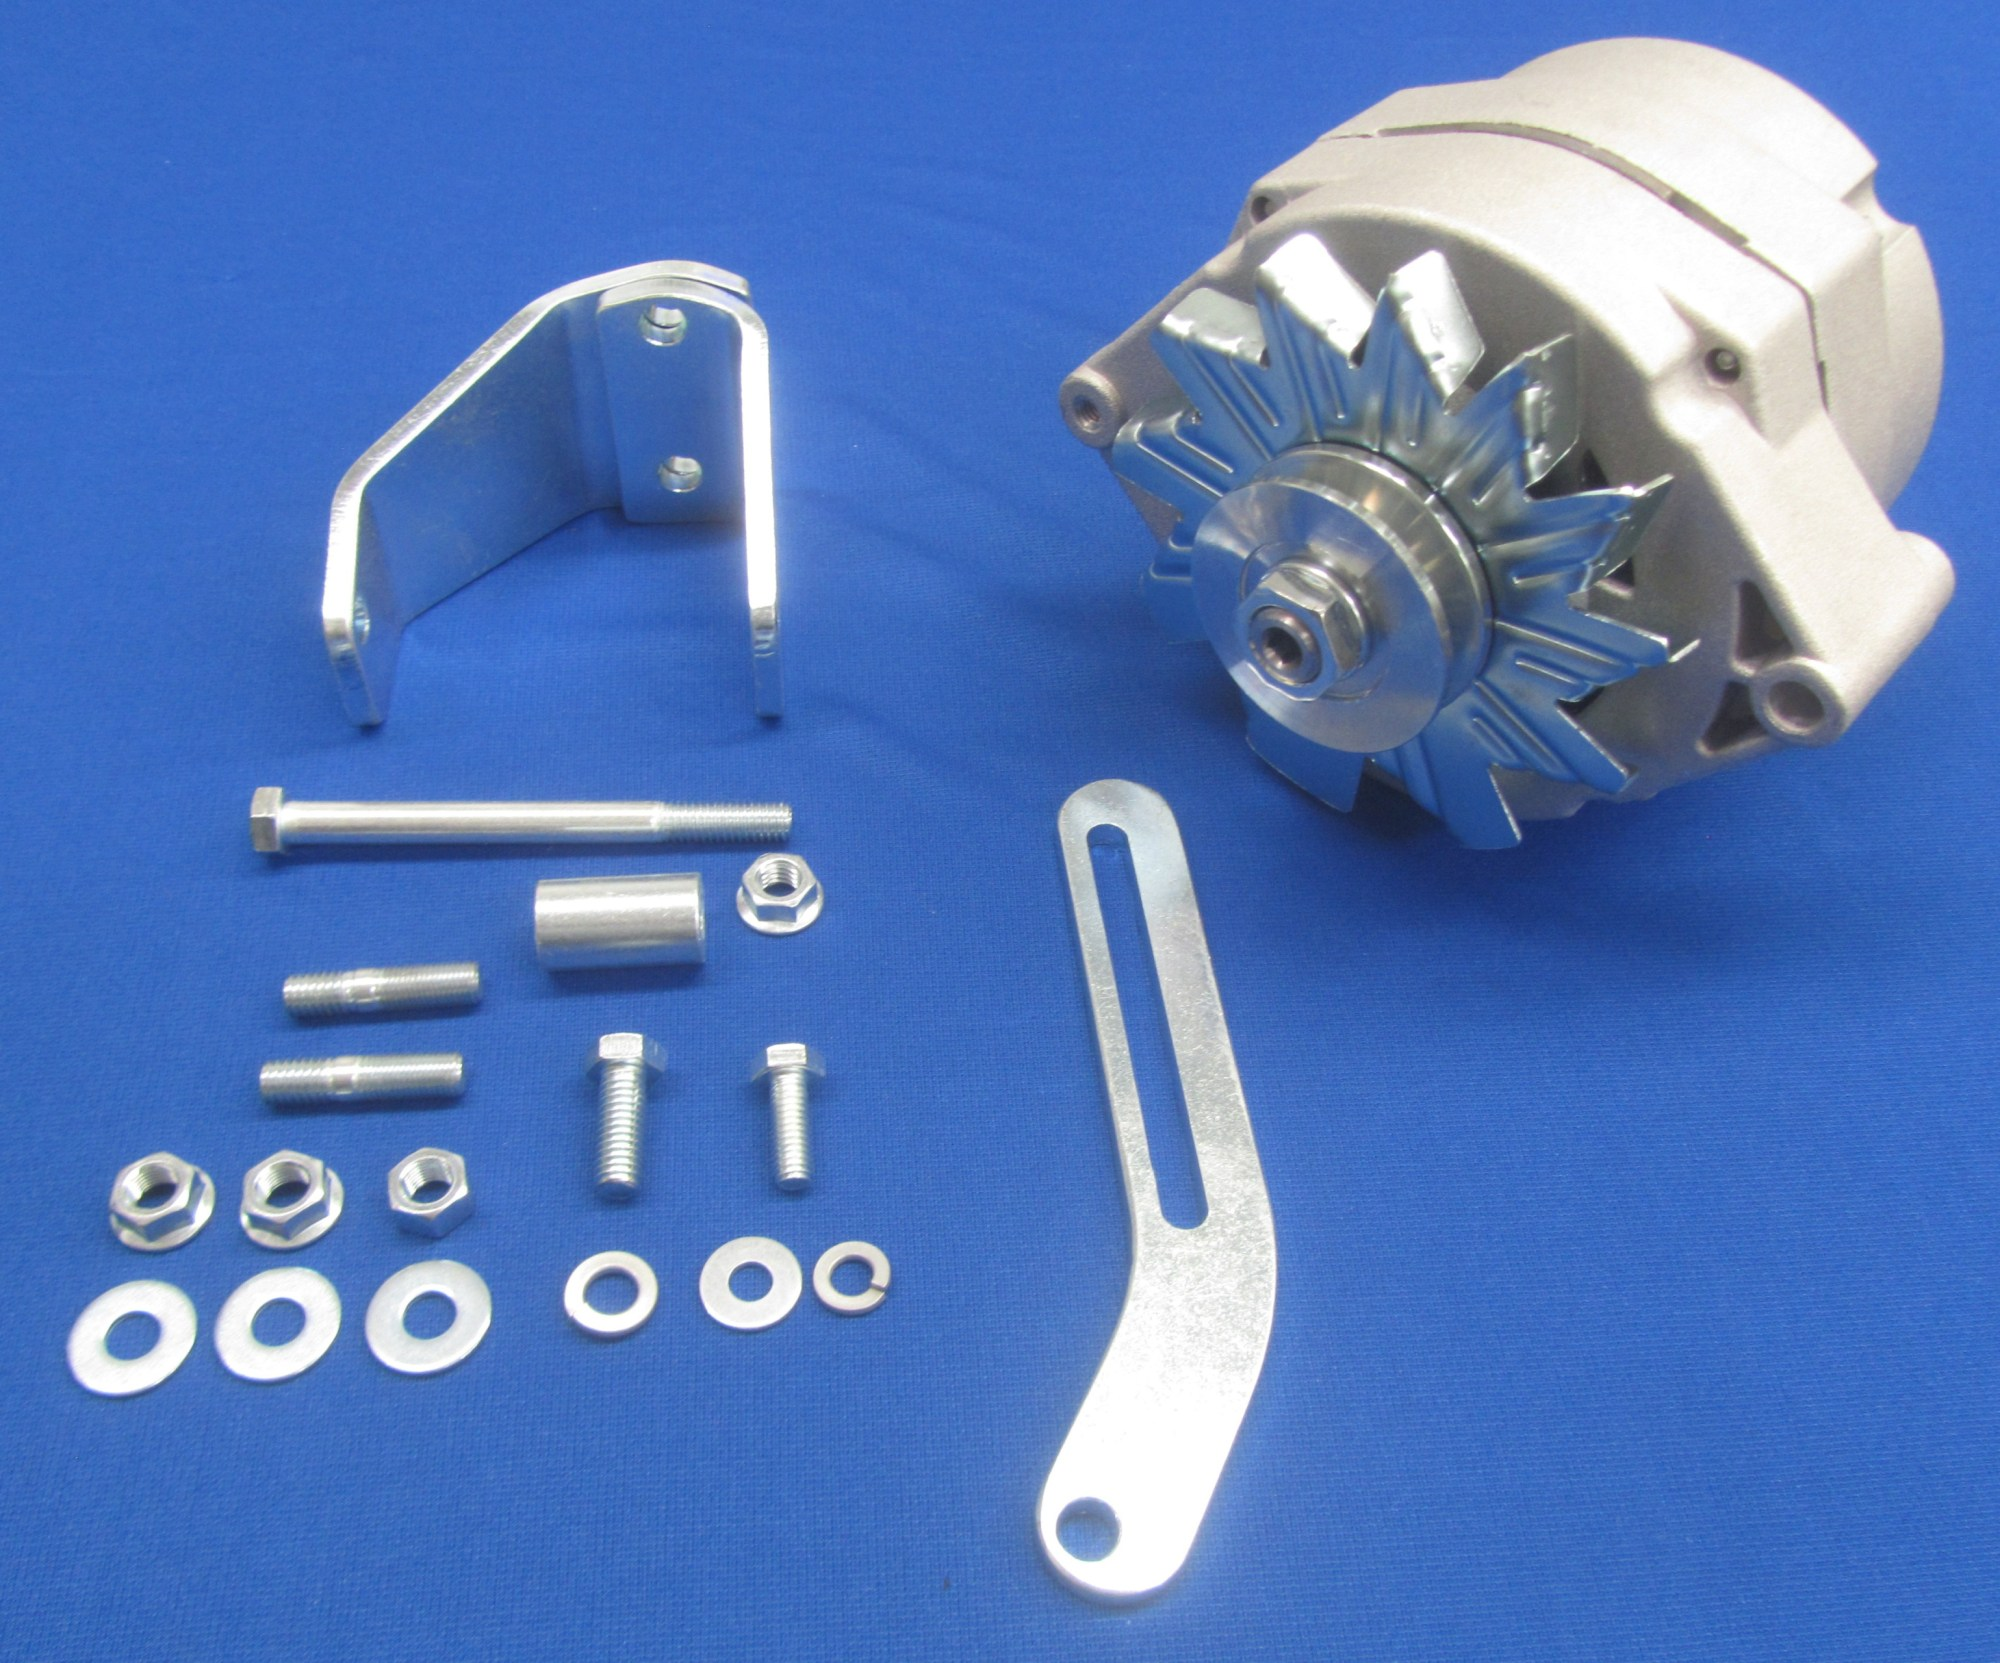 hight resolution of 1 wire alternator kit zinc plated fits lincoln welder sa 200 250 gas blackface w 3 8